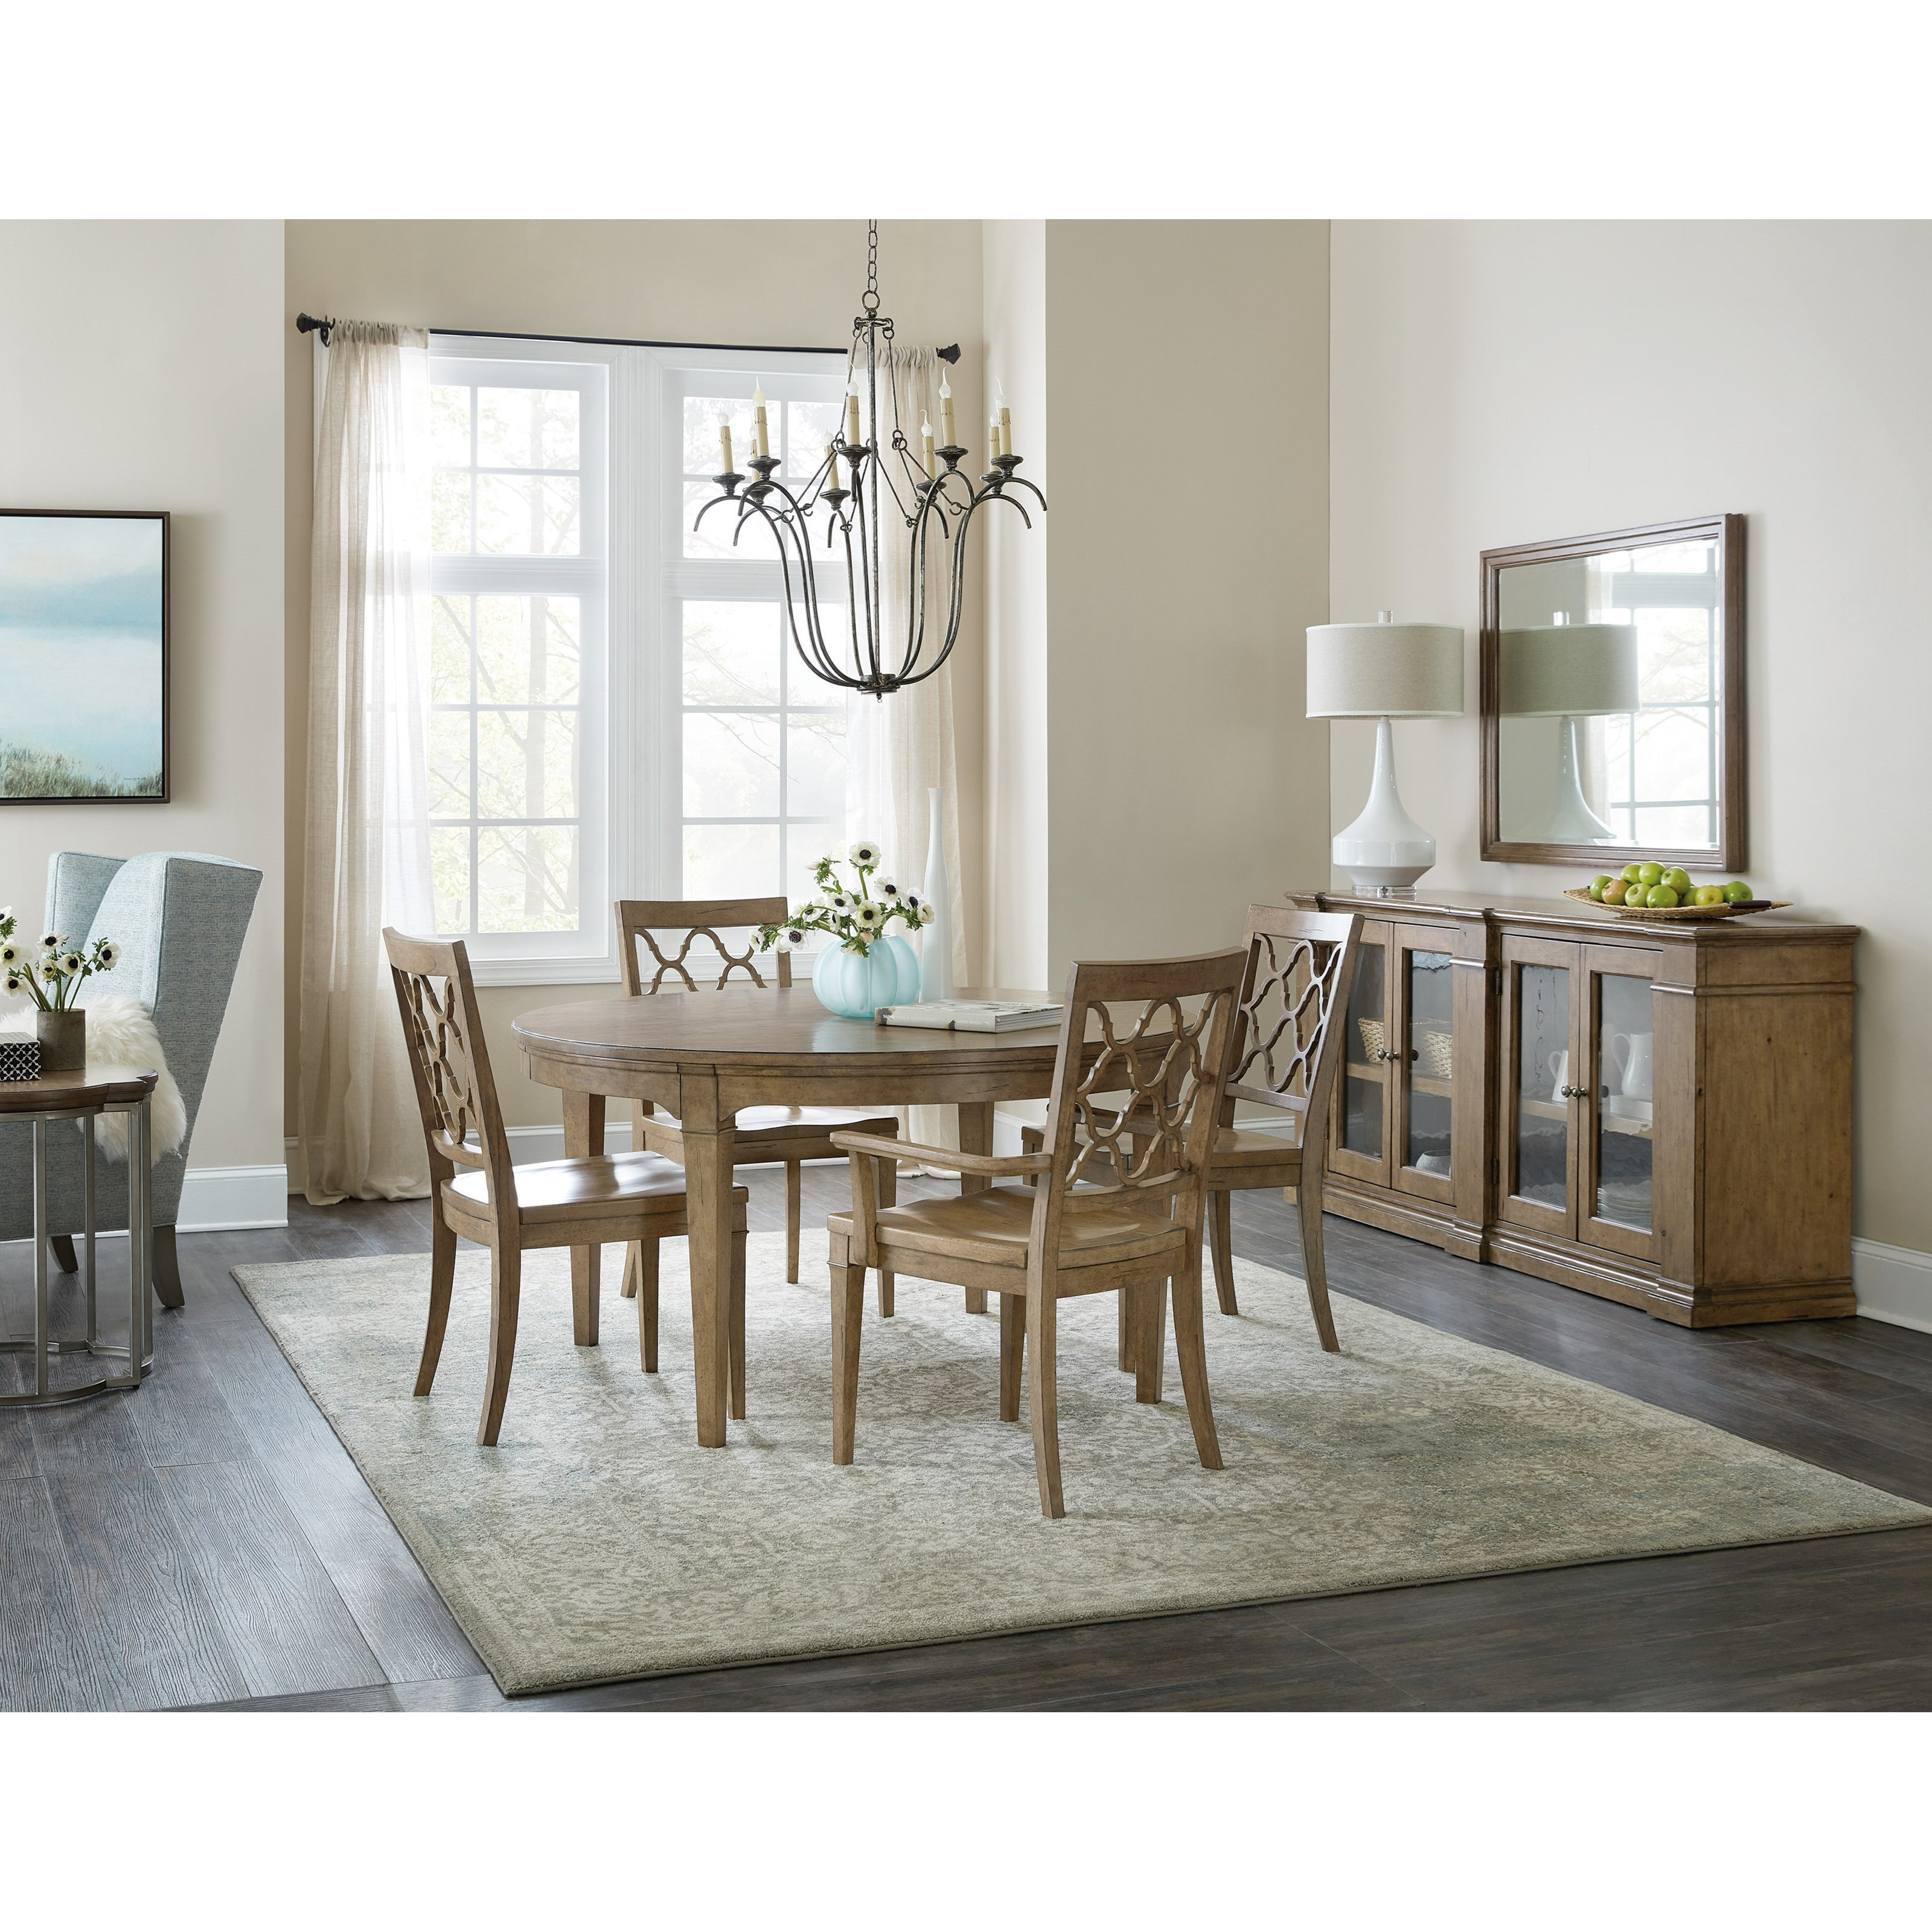 Montebello Casual Dining Room Group by Hooker Furniture at Baer's Furniture